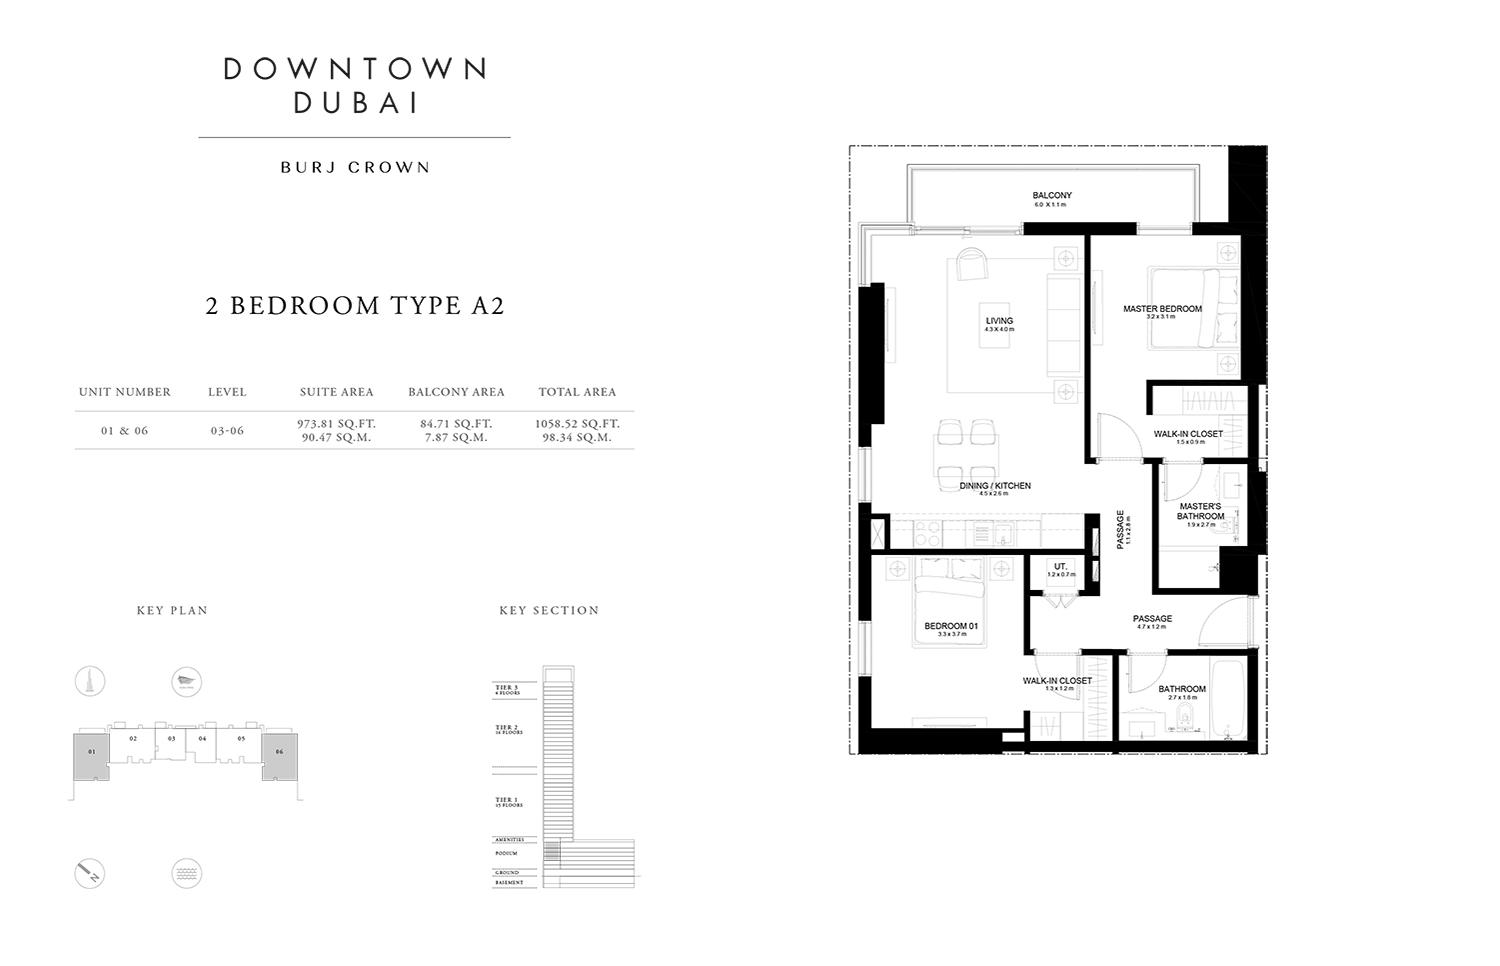 emaar burj crown floor plans